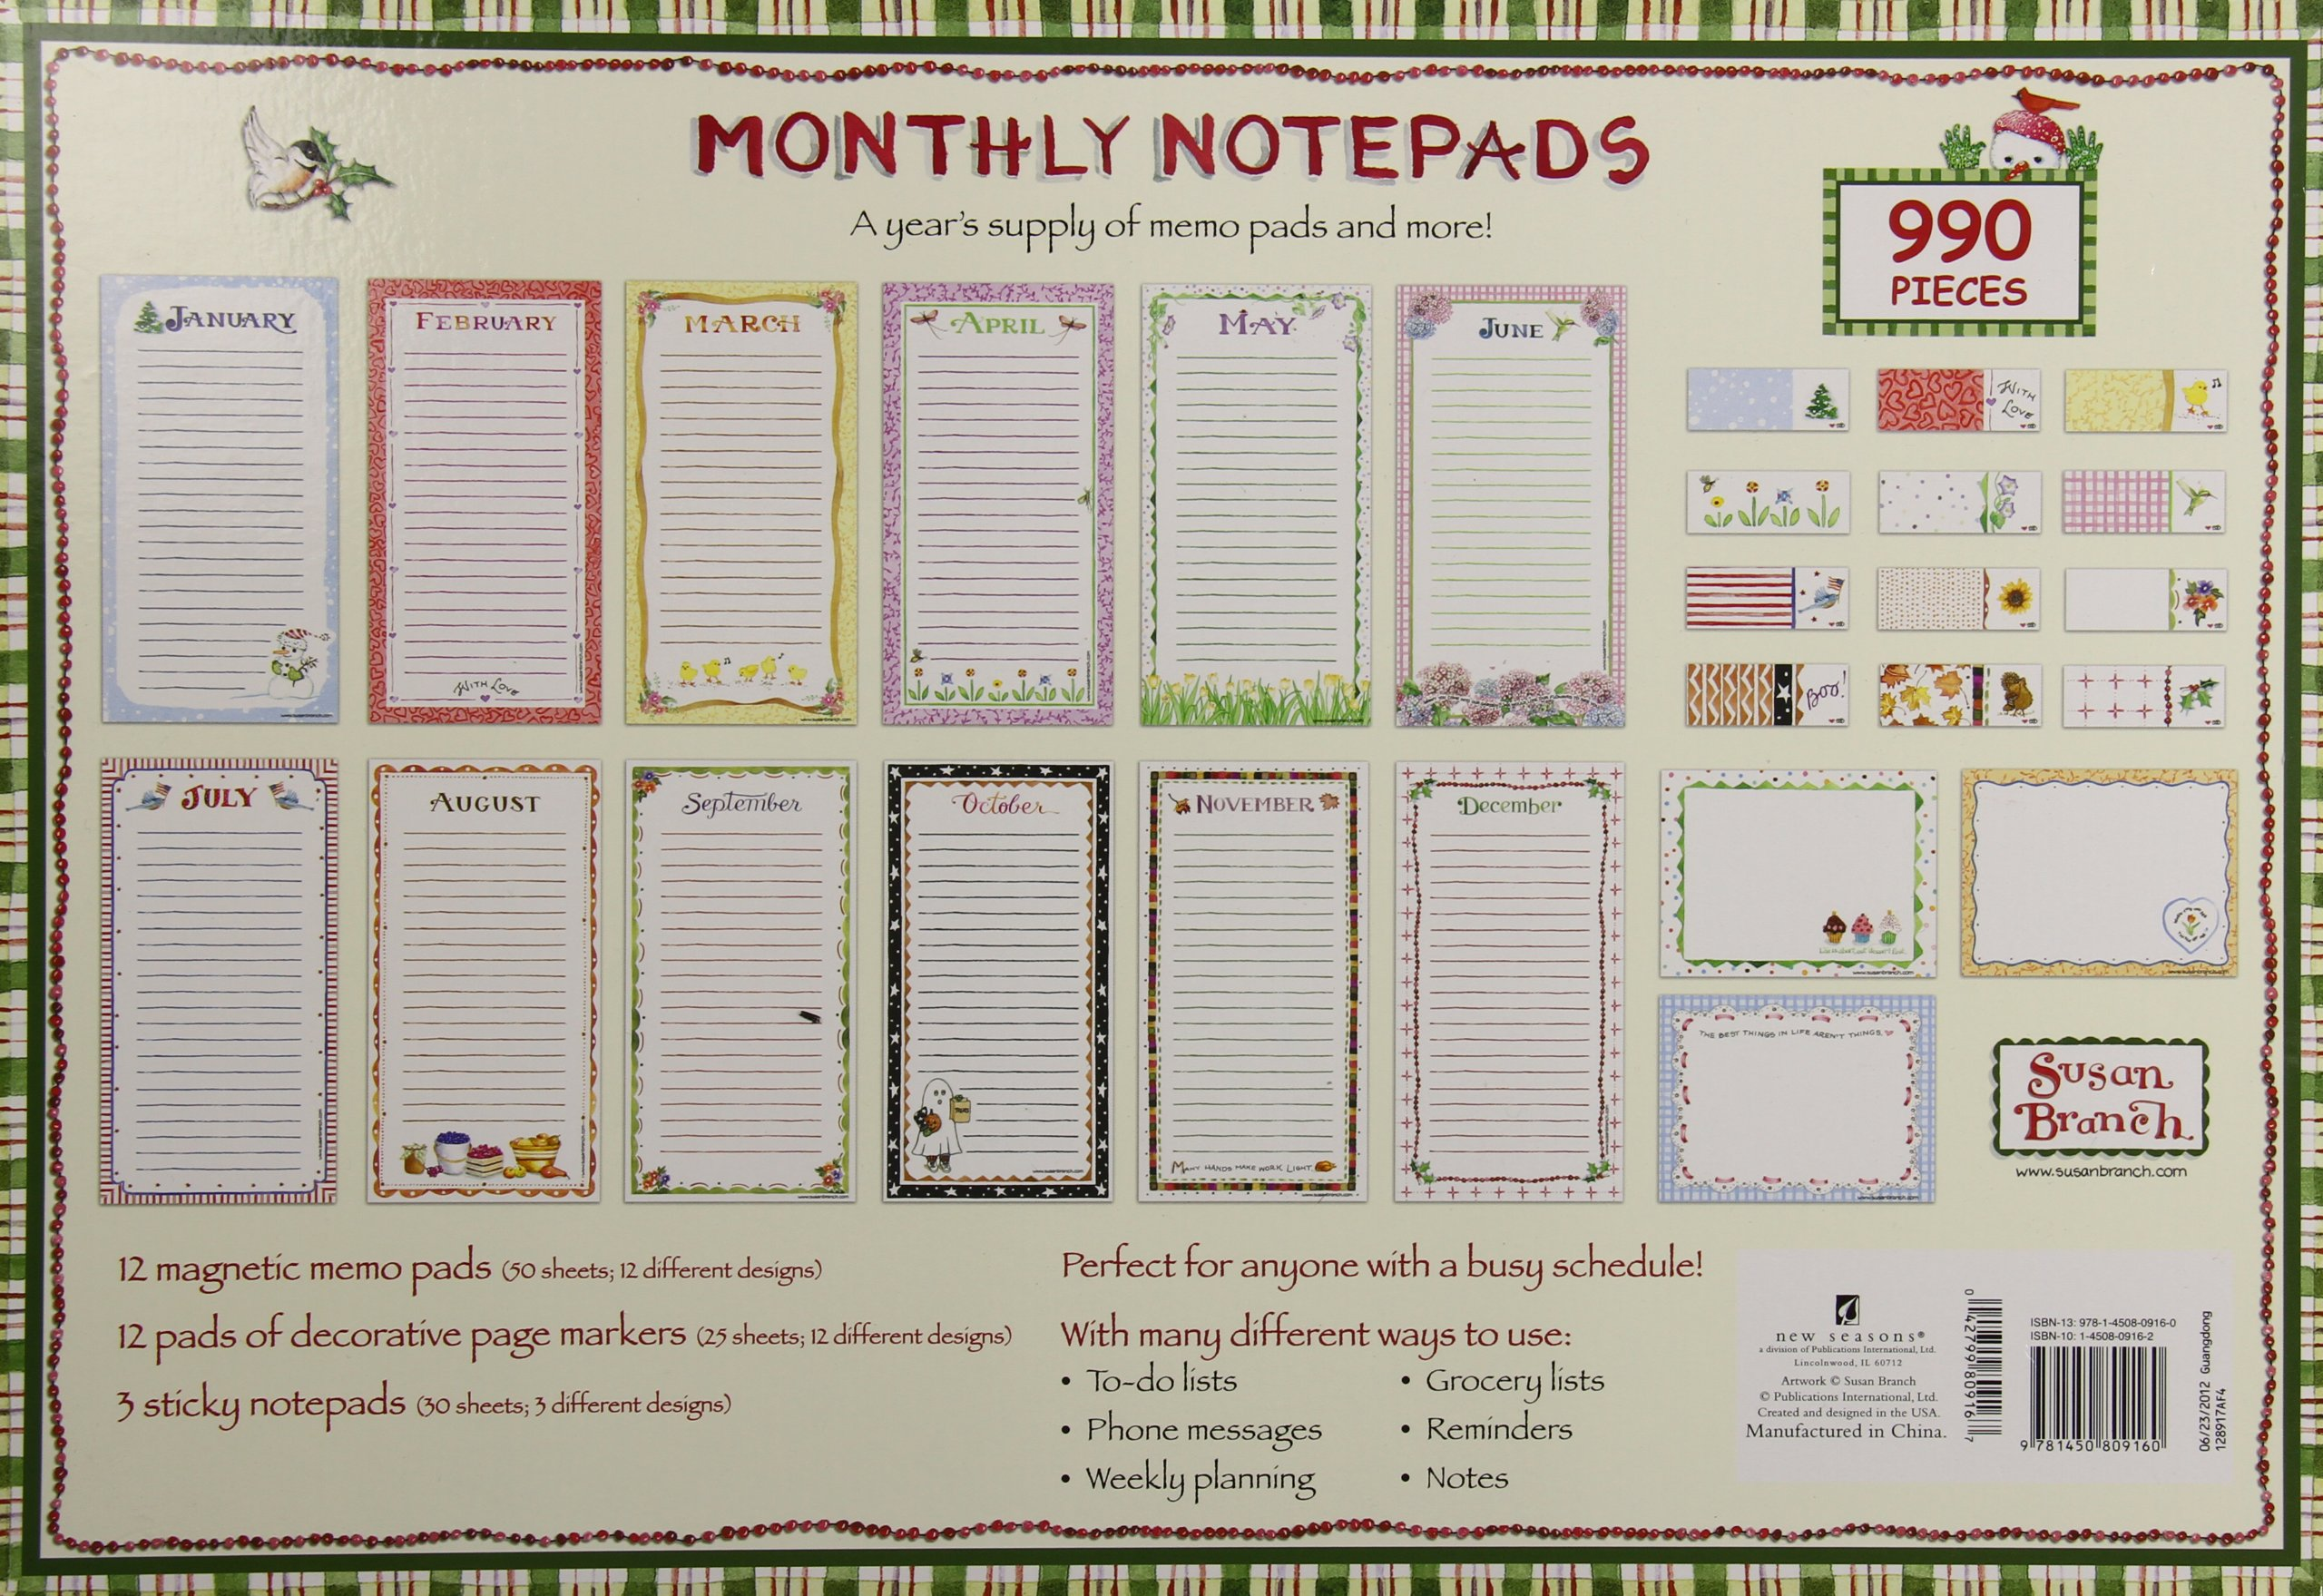 Monthly Notepads Painted Seasons Fall Stripes by New Seasons (Image #2)